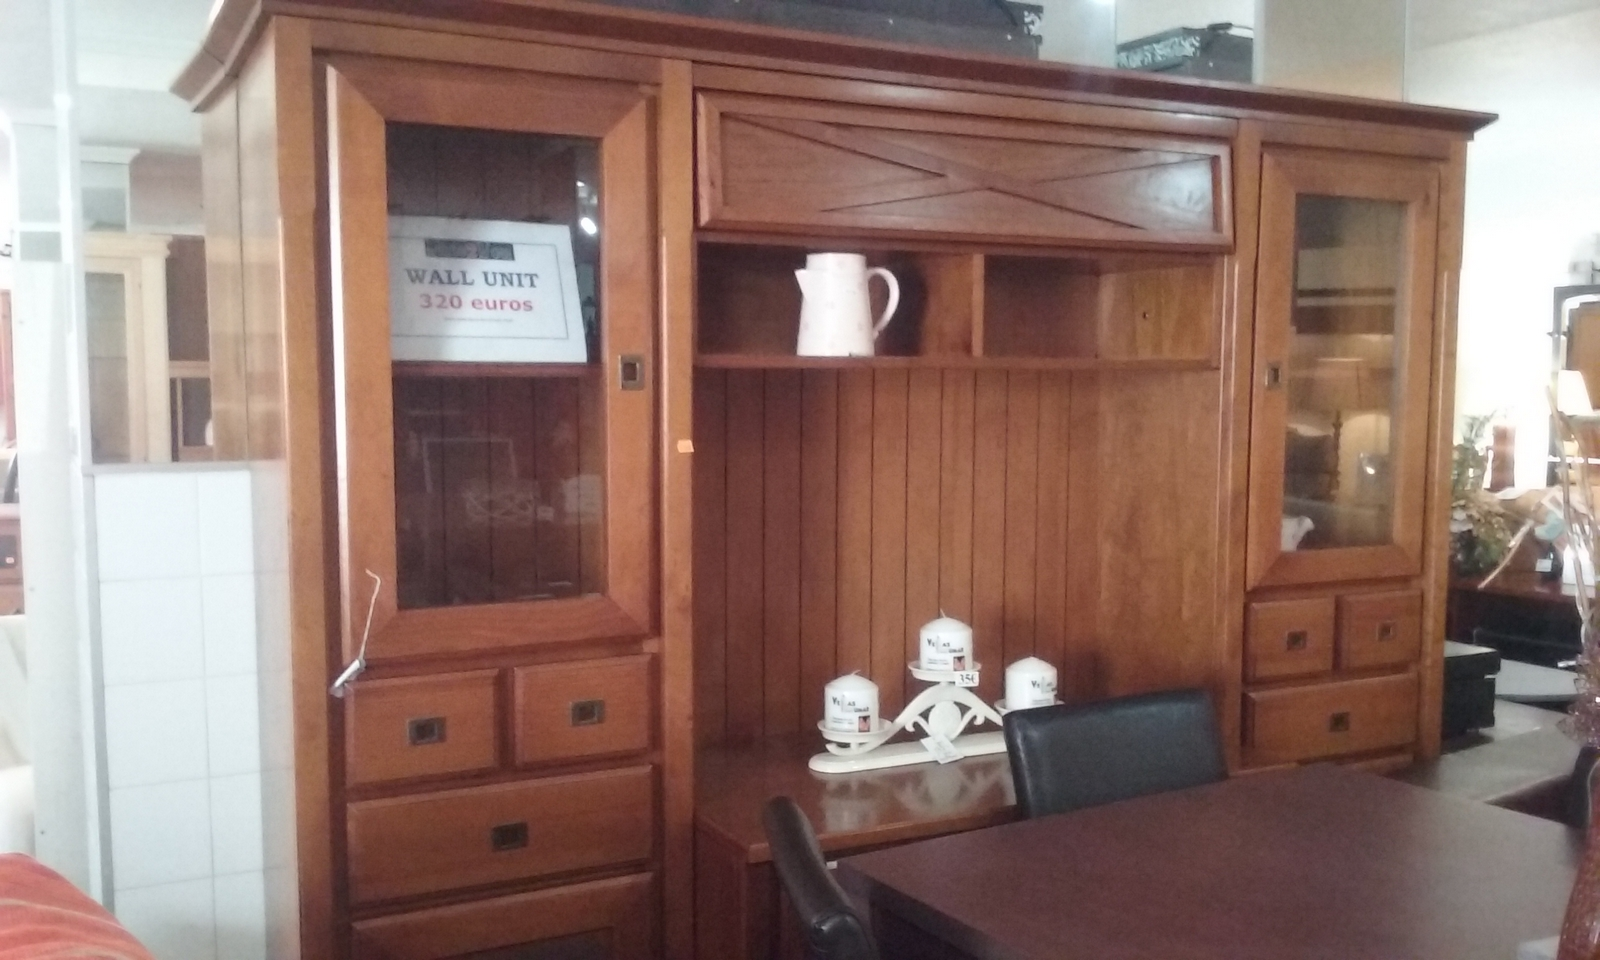 2nd Hand Furniture Excellent With Nd Hand Furniture Lilyfield Life Why Buy Second Hand Or